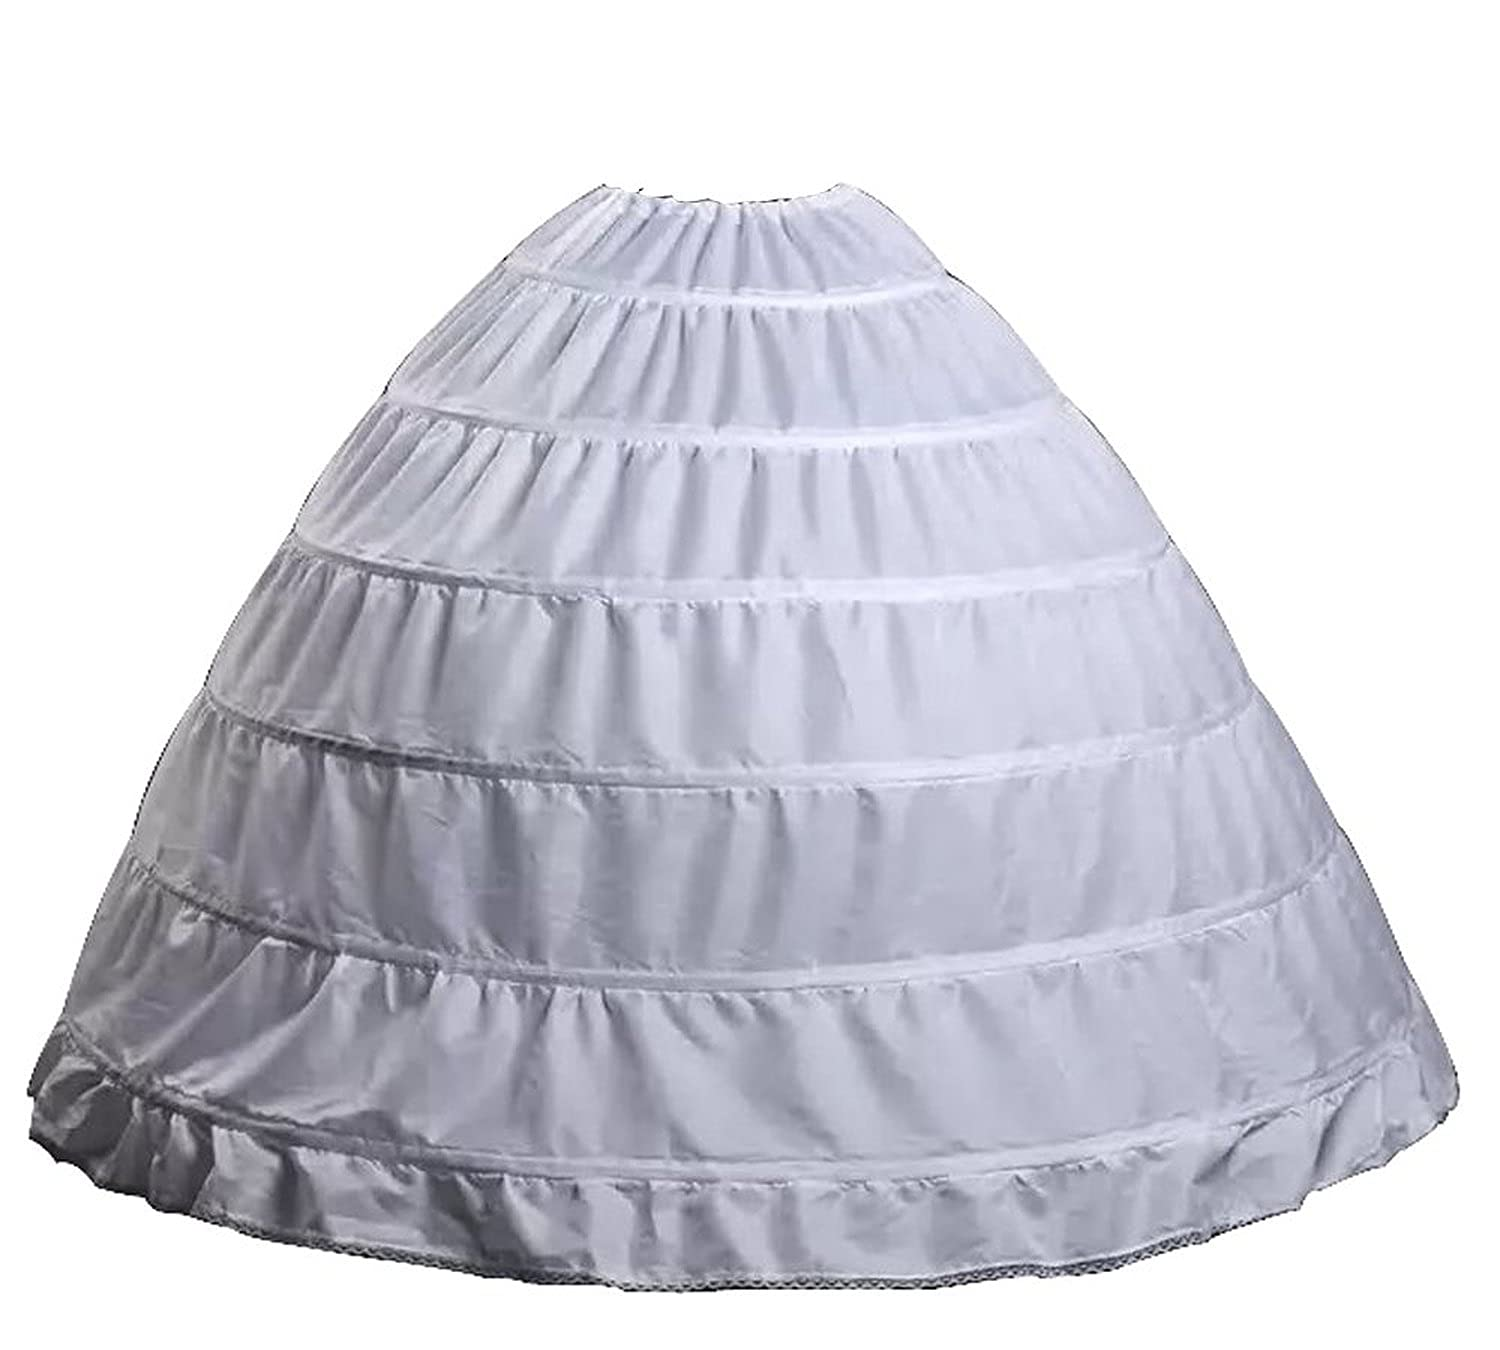 RohmBridal Women's Wedding Dress Petticoats 6 Hoops Crinoline Slips Underskirt Petticoat-05